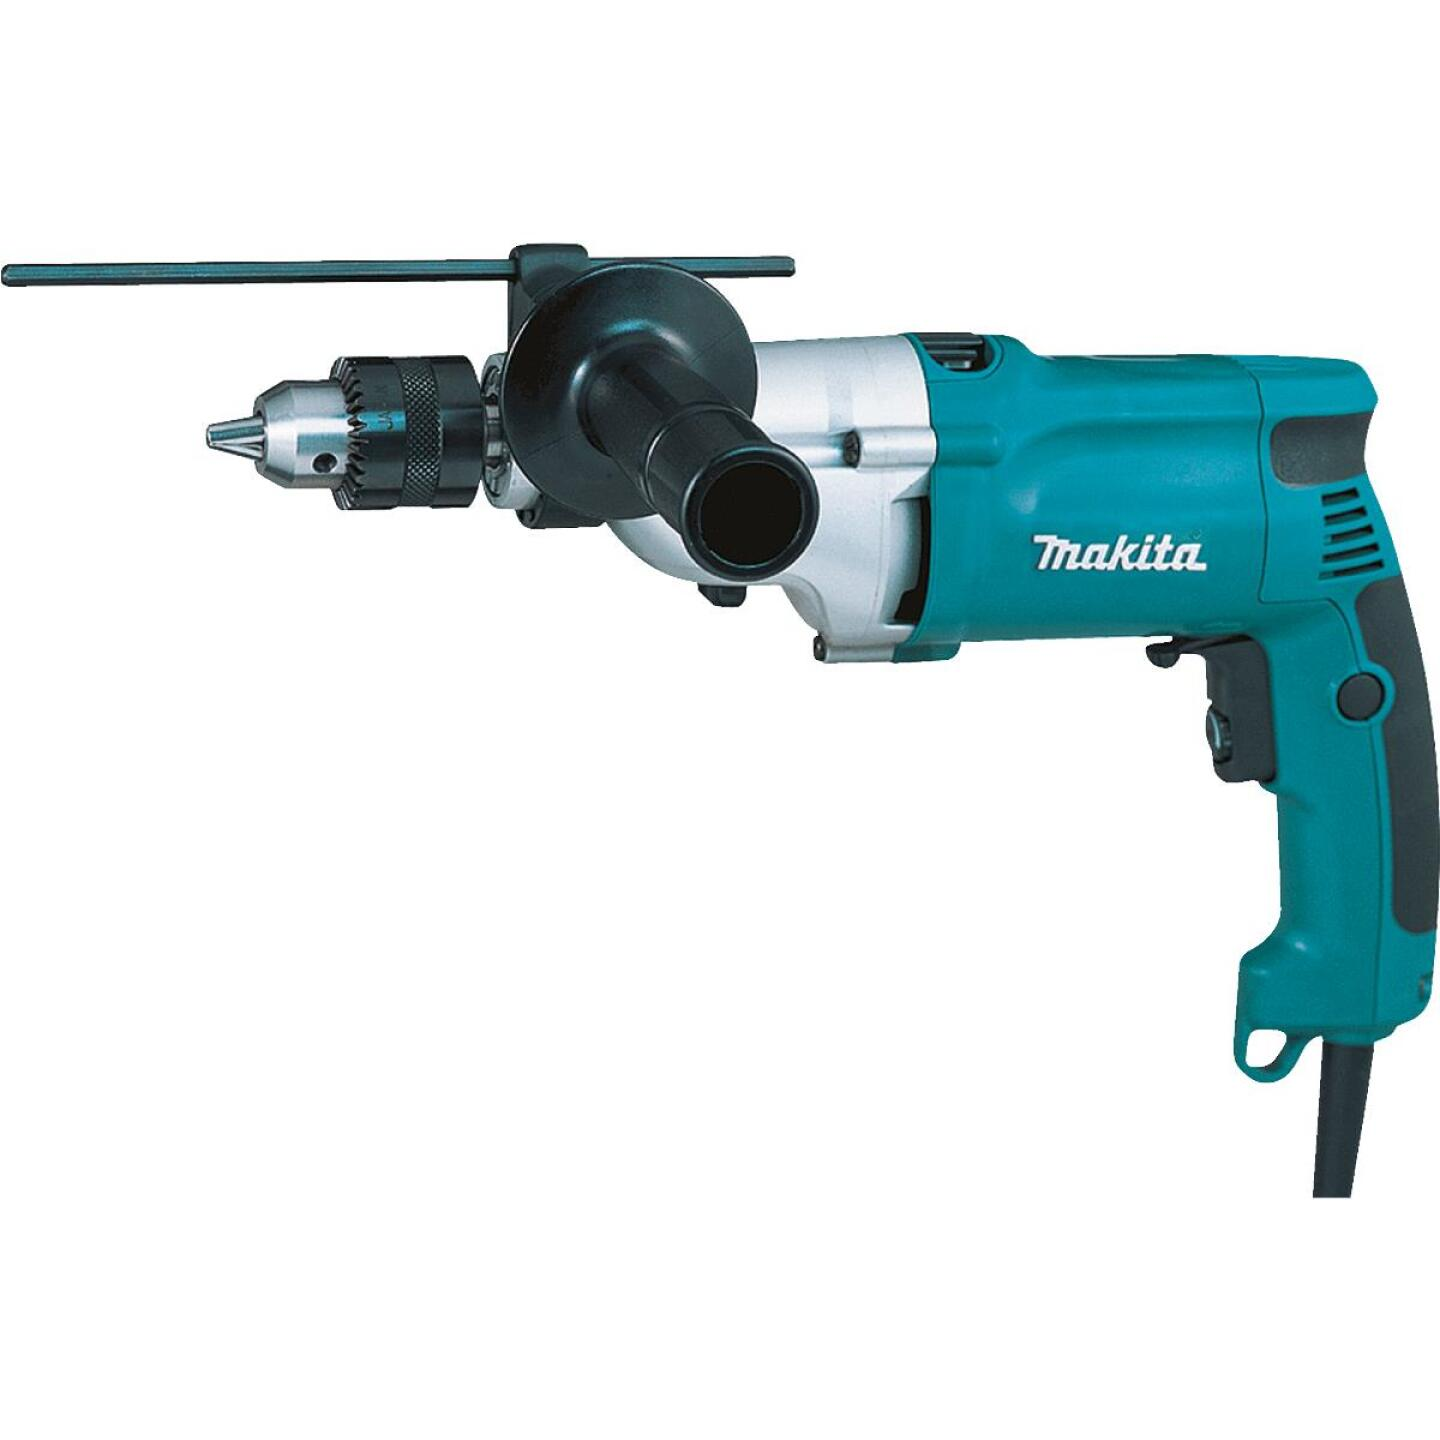 Makita 3/4 In. Keyed 6.6-Amp VSR Electric Hammer Drill Image 1